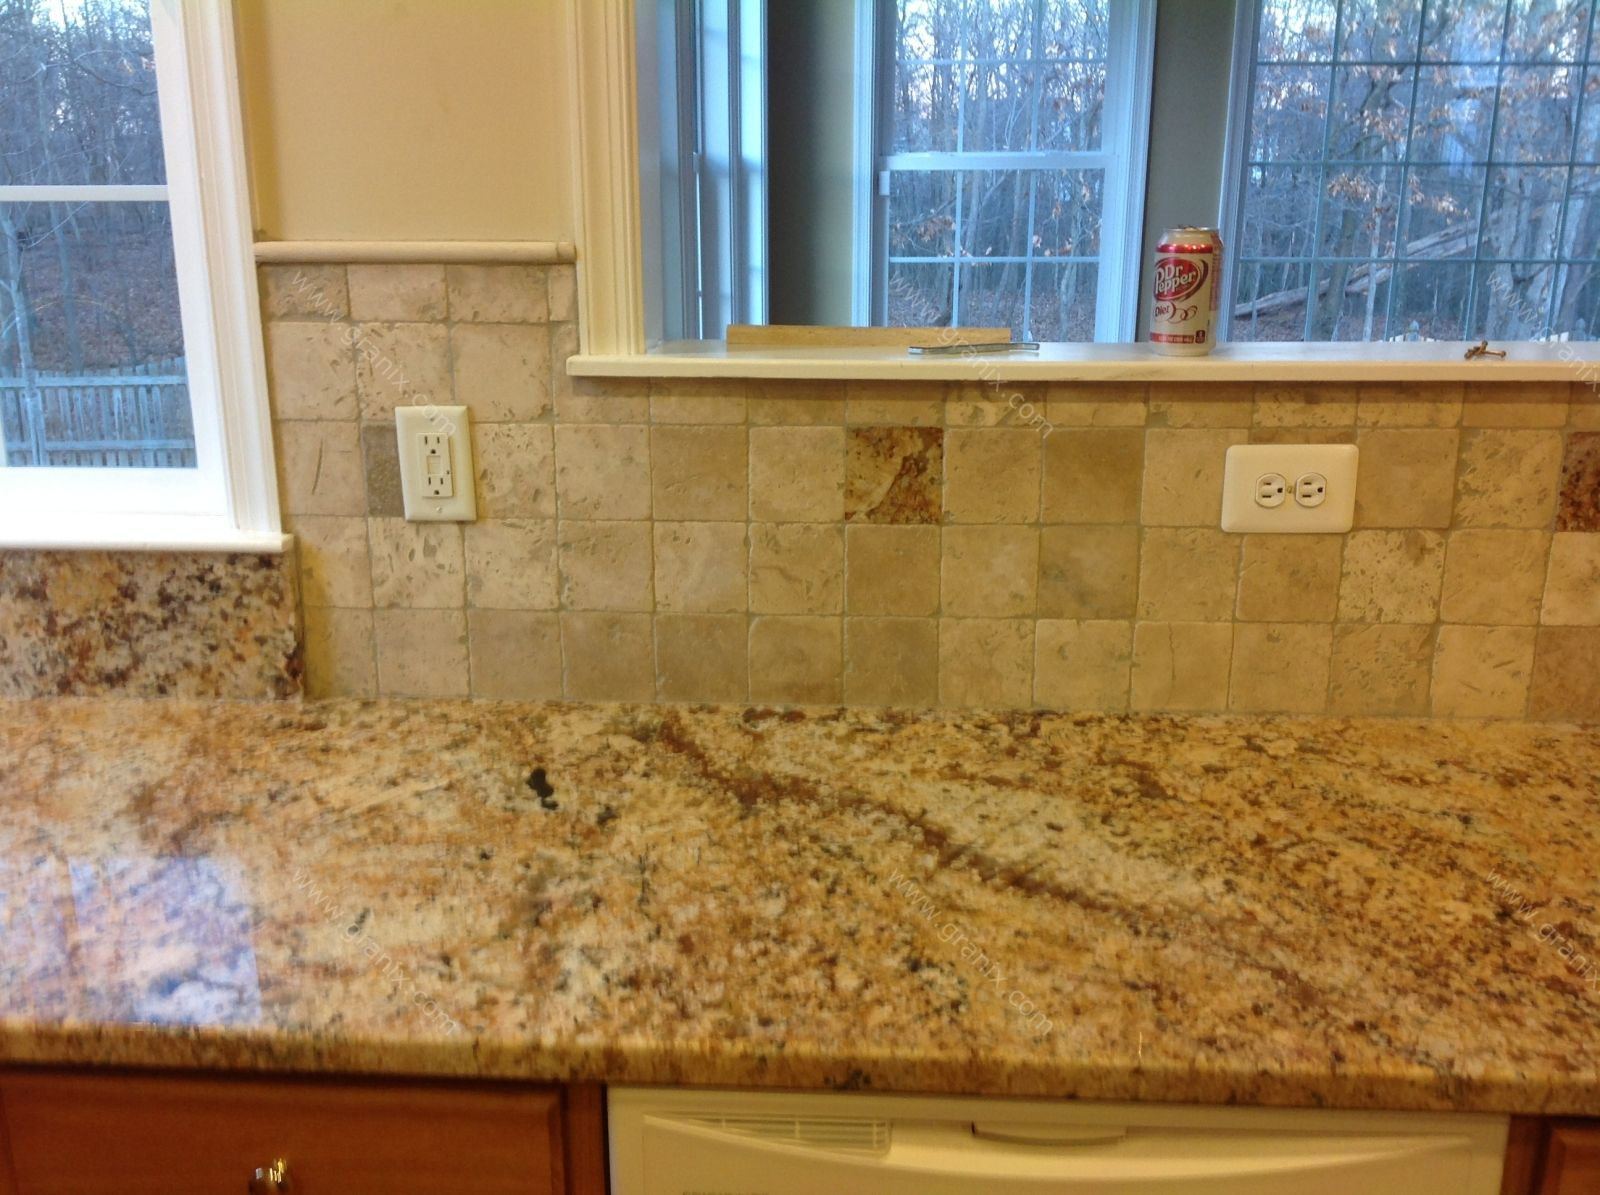 backsplash for busy granite countertops diana g solarius granite countertop backsplash design - Granite Countertops With Backsplash